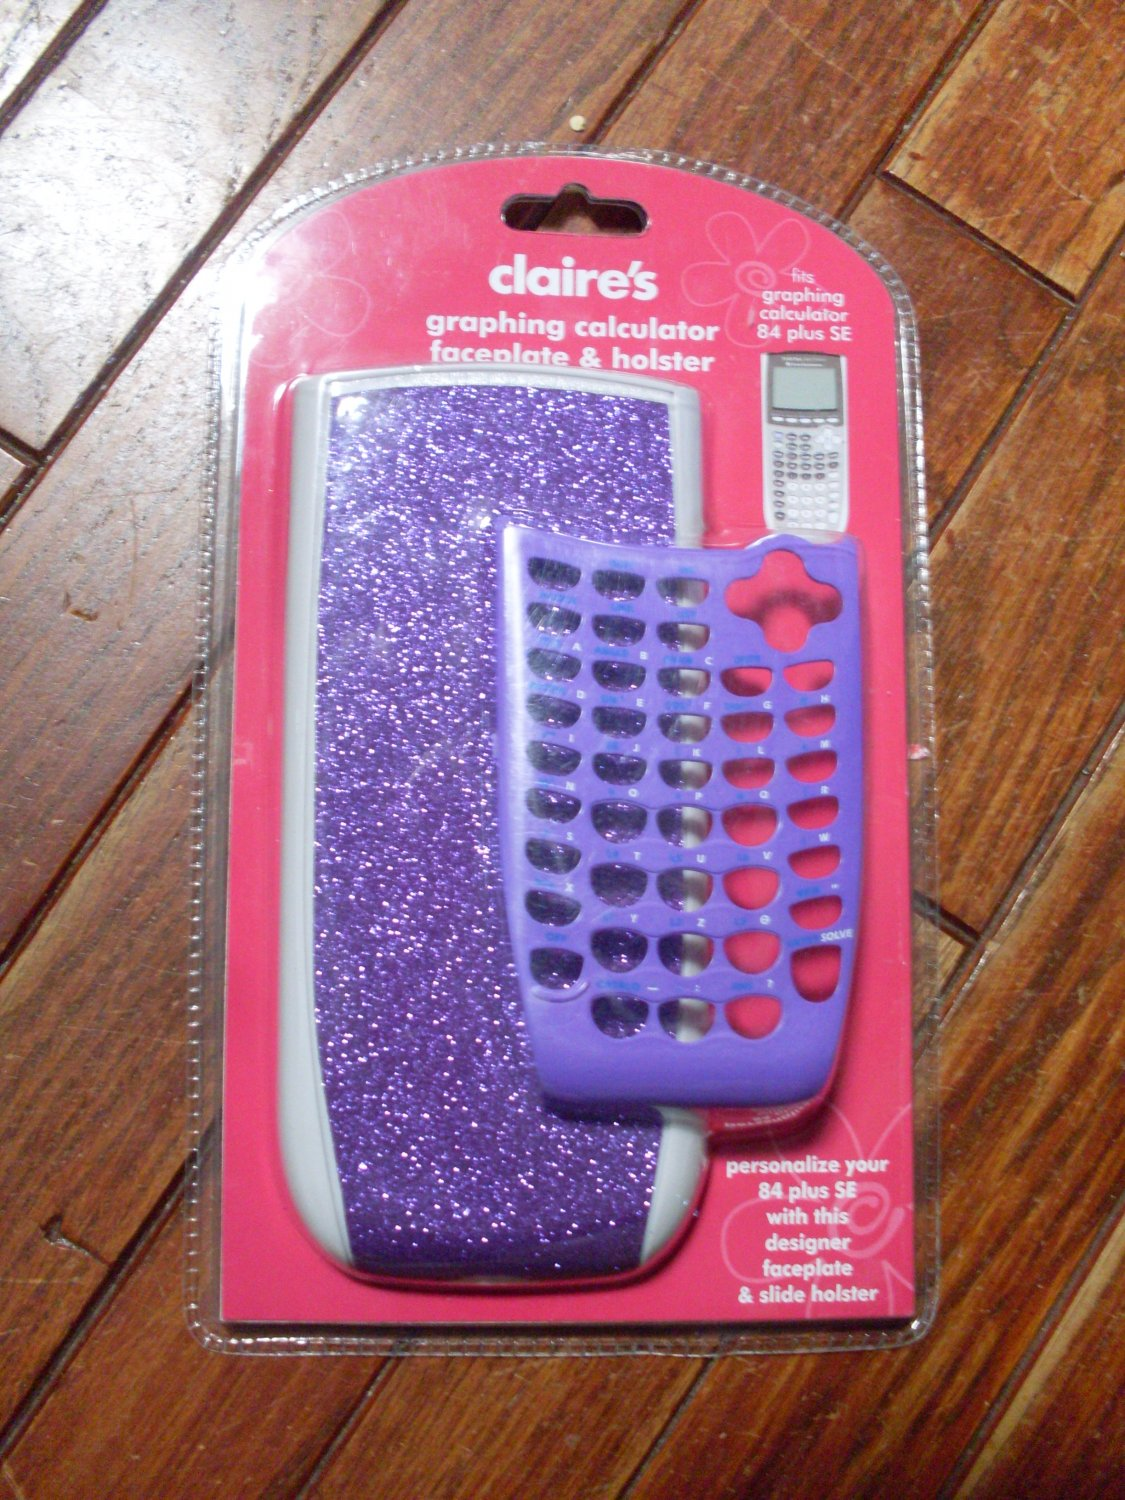 SOLD  Claires TI 84 plus SE calculator face plate